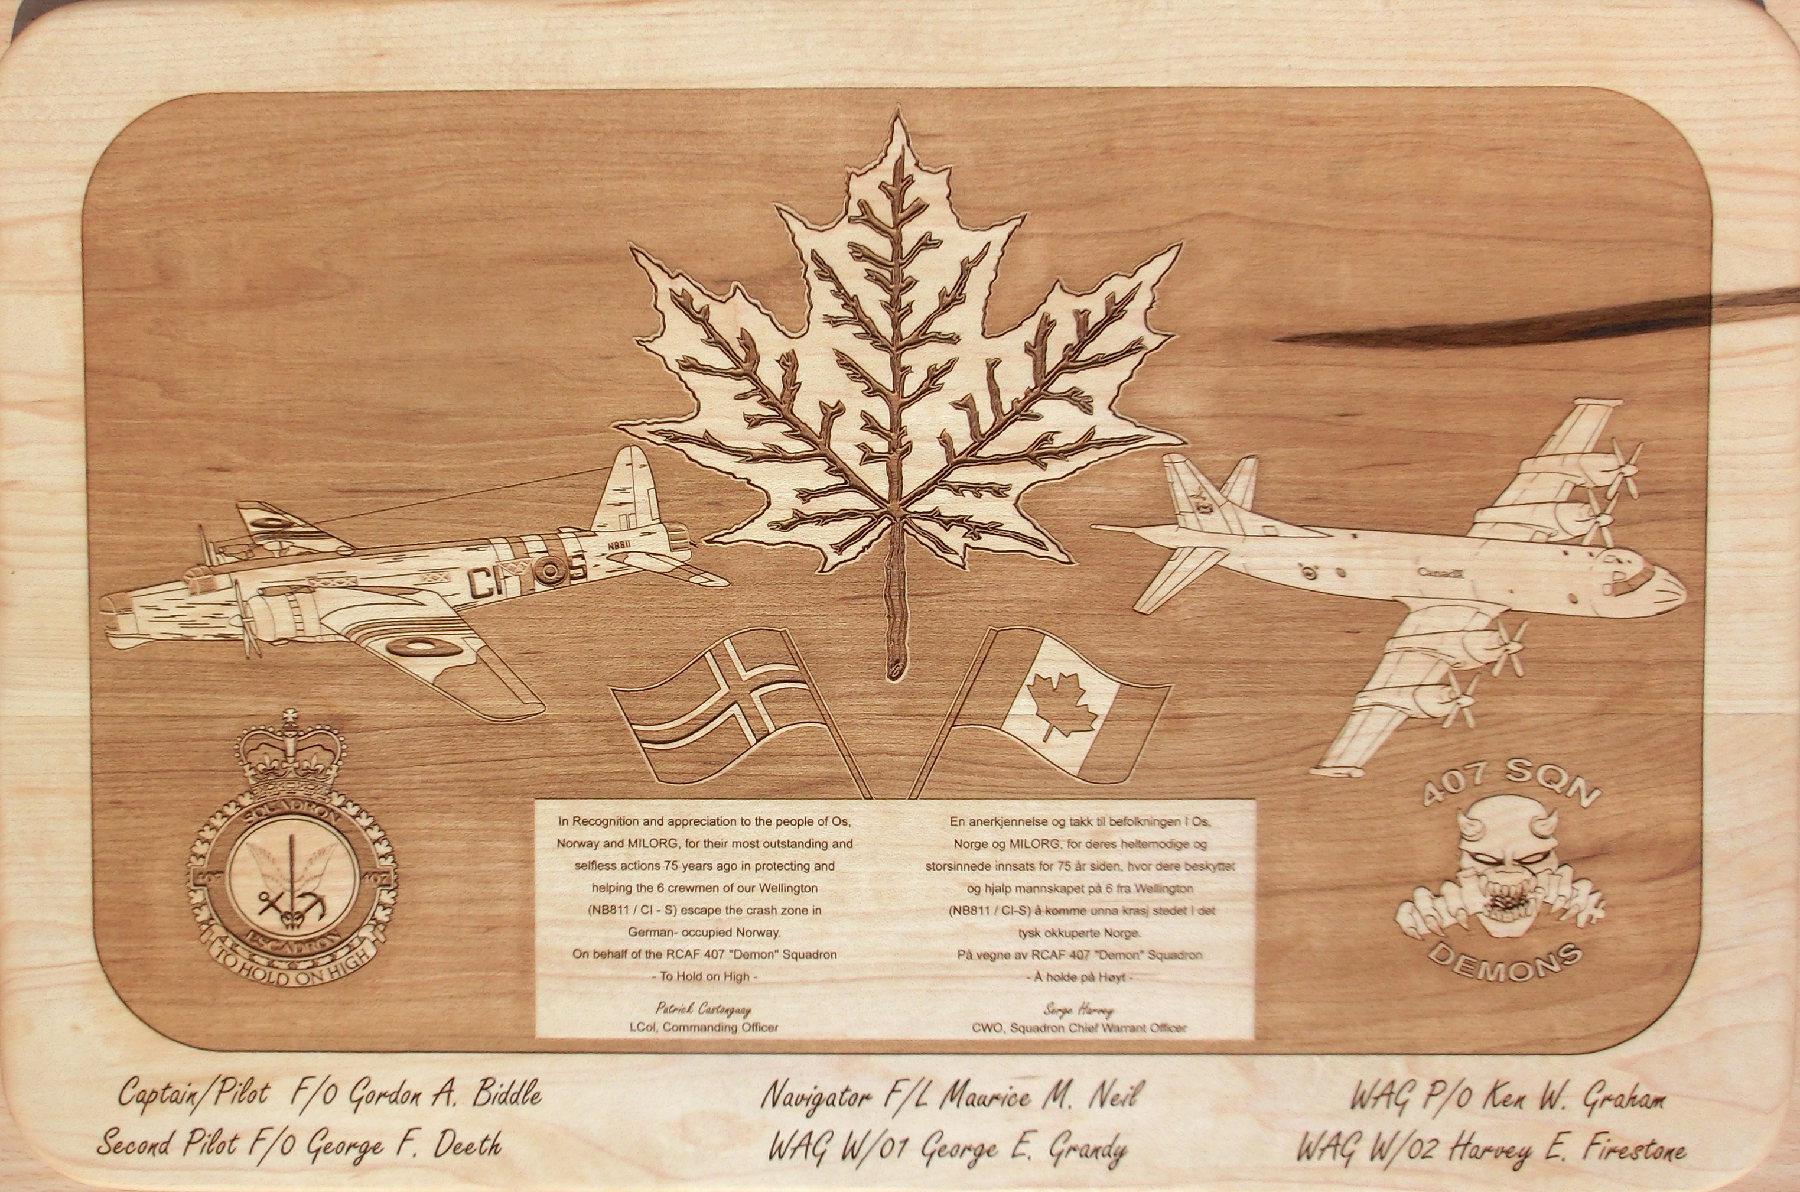 "An etched wooden plaque commemorating the events of early autumn 1944 in Os, Norway, reads: ""In Recognition and appreciation to the people of Os, Norway, and MILORG, for their most outstanding and selfless actions 75 years ago in protecting and helping the 6 crewmen of our Wellington (NB811 / CI - S) escape the crash zone in German- occupied Norway. On behalf of the RCAF ""Demon"" Squadron - To Hold On High – Patrick Castonguay LCol, Commanding Officer"".  Etched at the bottom are the names of the six crewmembers: Captain/Pilot F/O Gordon A. Biddle; Second Pilot F/O George F. Deeth; Navigator F/L Maurice M. Neil; WAG W/01 George E. Grandy; WAG PO Ken W. Graham; W/02 Harvey E. Firestone. PHOTO: Submitted"